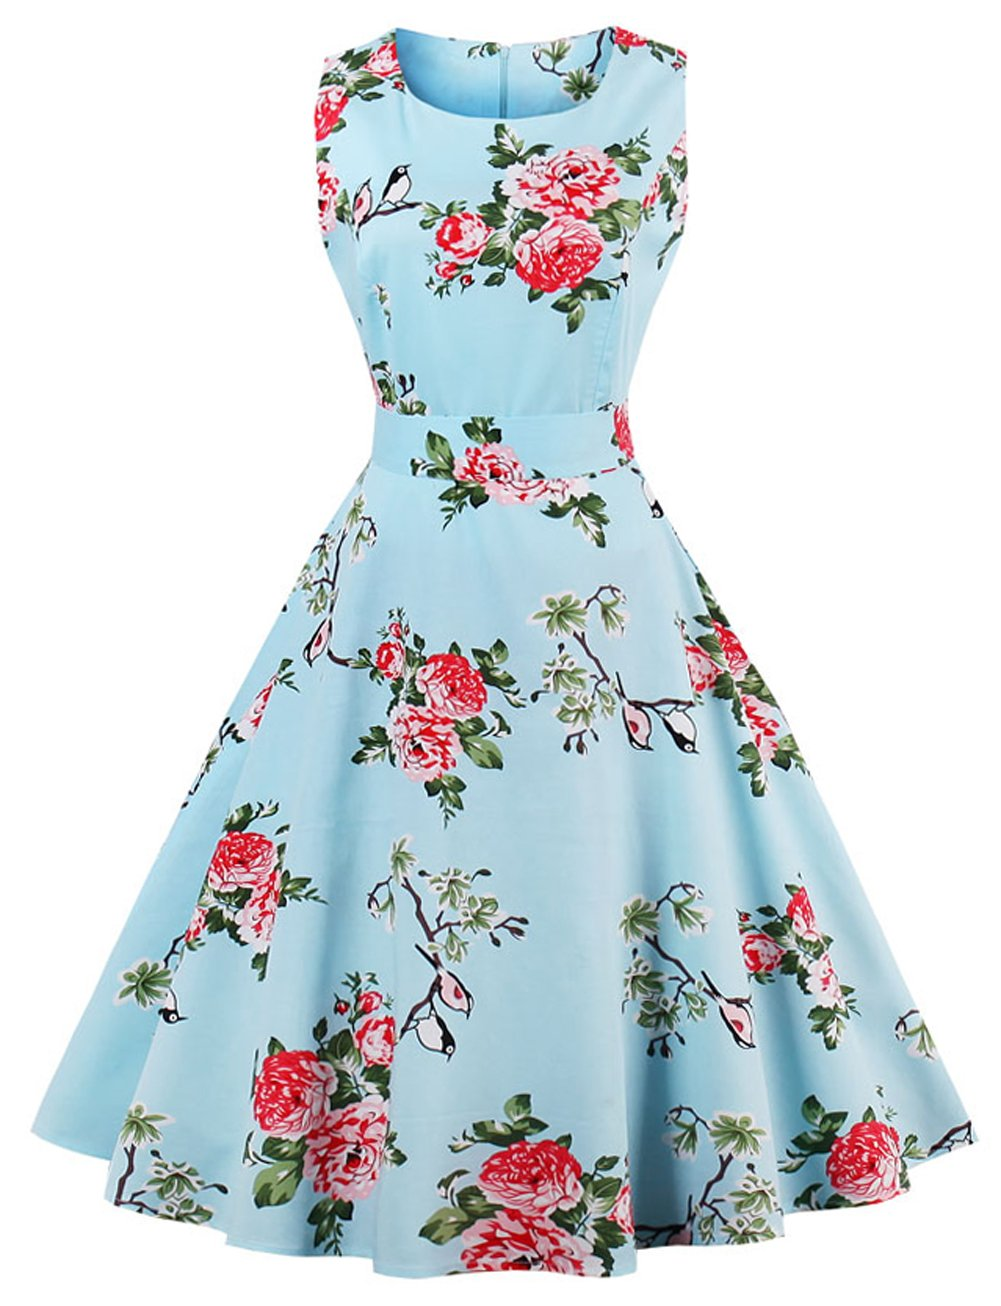 FAIRY COUPLE 50s Vintage Retro Floral Cocktail Swing Party Dress Bow DRT017